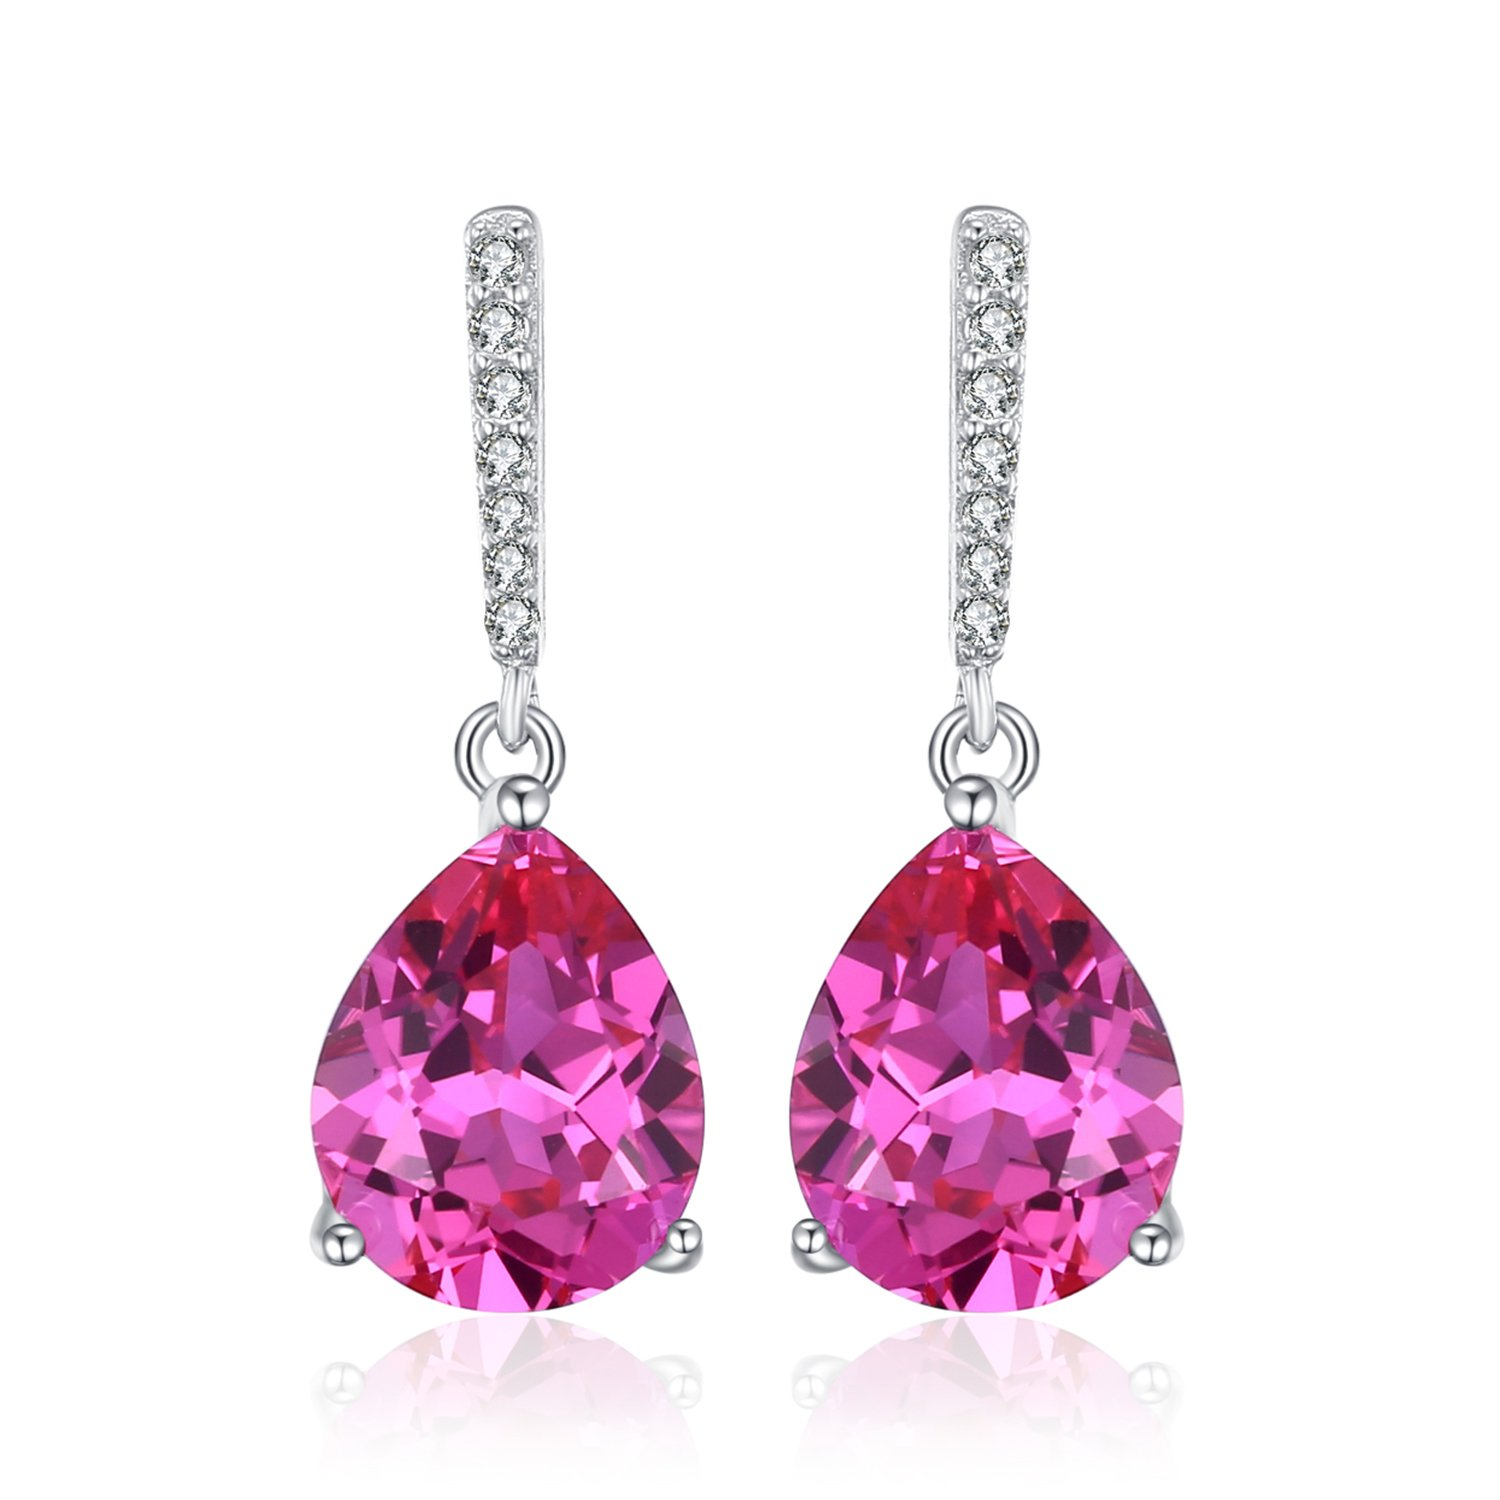 8f68008e8 Amazon.com: JewelryPalace Classic 7ct Pear Created Pink Sapphire Drop  Earrings 925 Sterling Silver: Jewelry